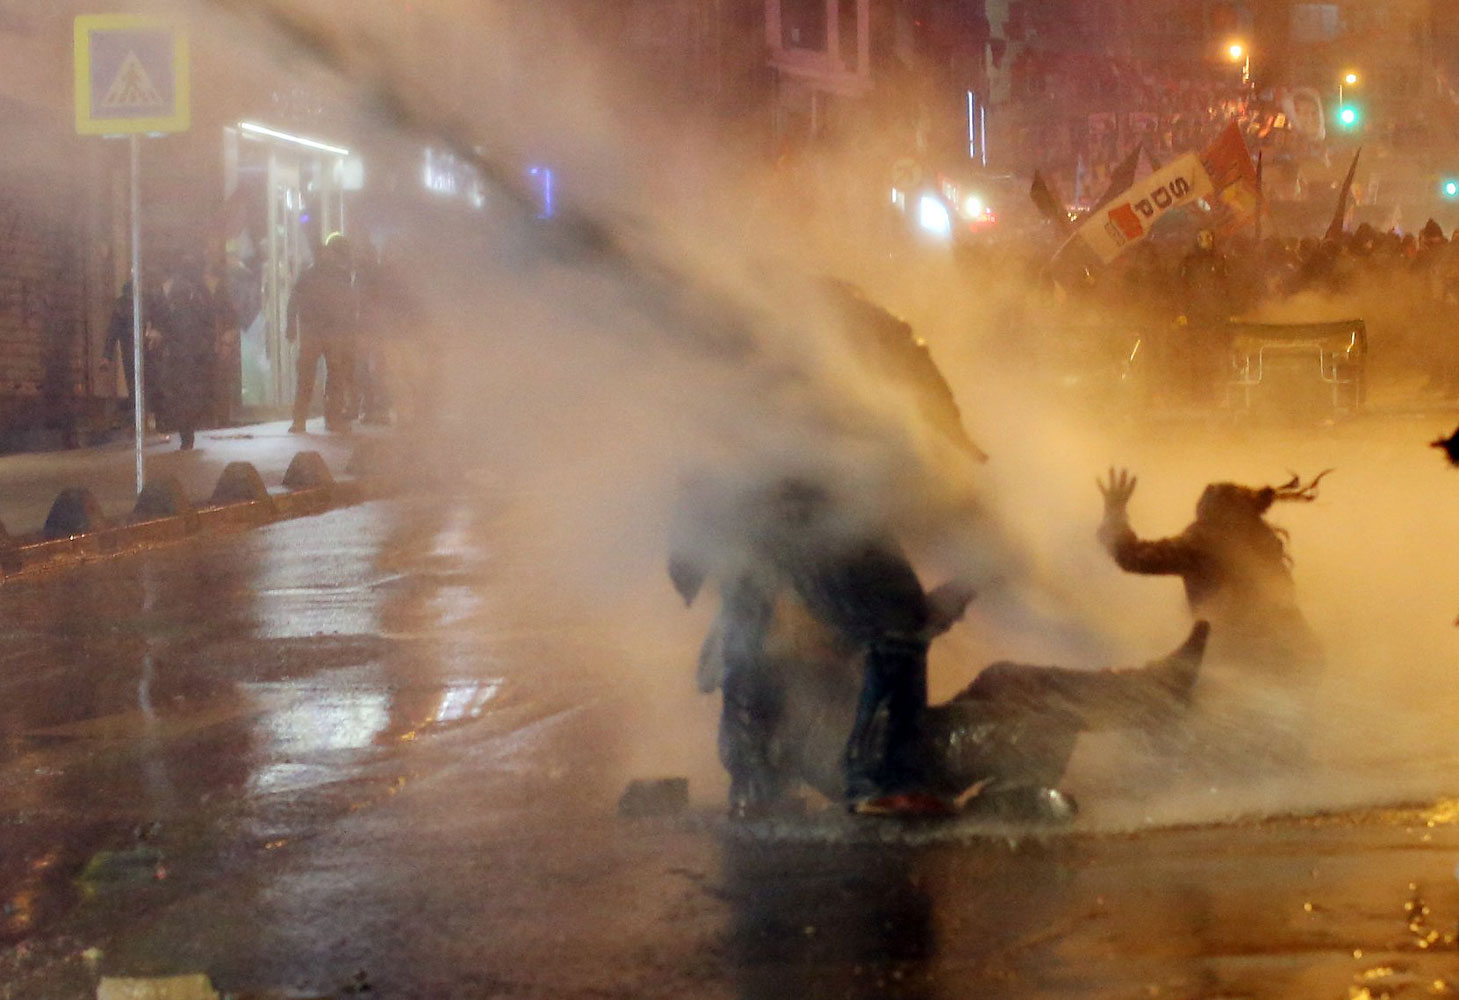 Protesters are hit by water cannon during clashes with riot police in Kadikoy, on the Anatolian side of Istanbul, on March 11, 2014.